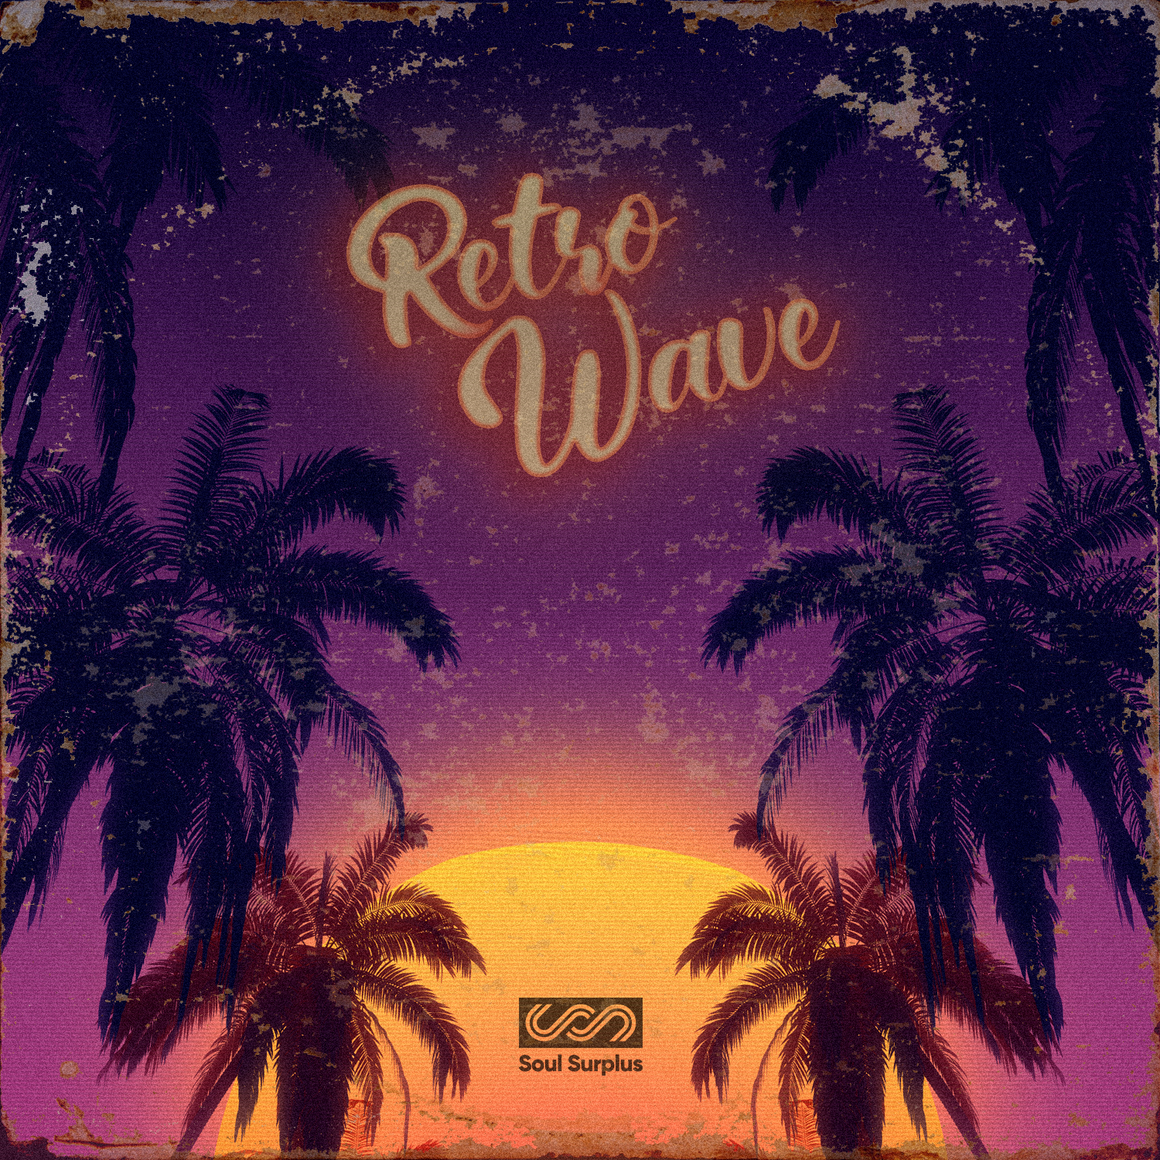 Retro Wave (Sample Pack)